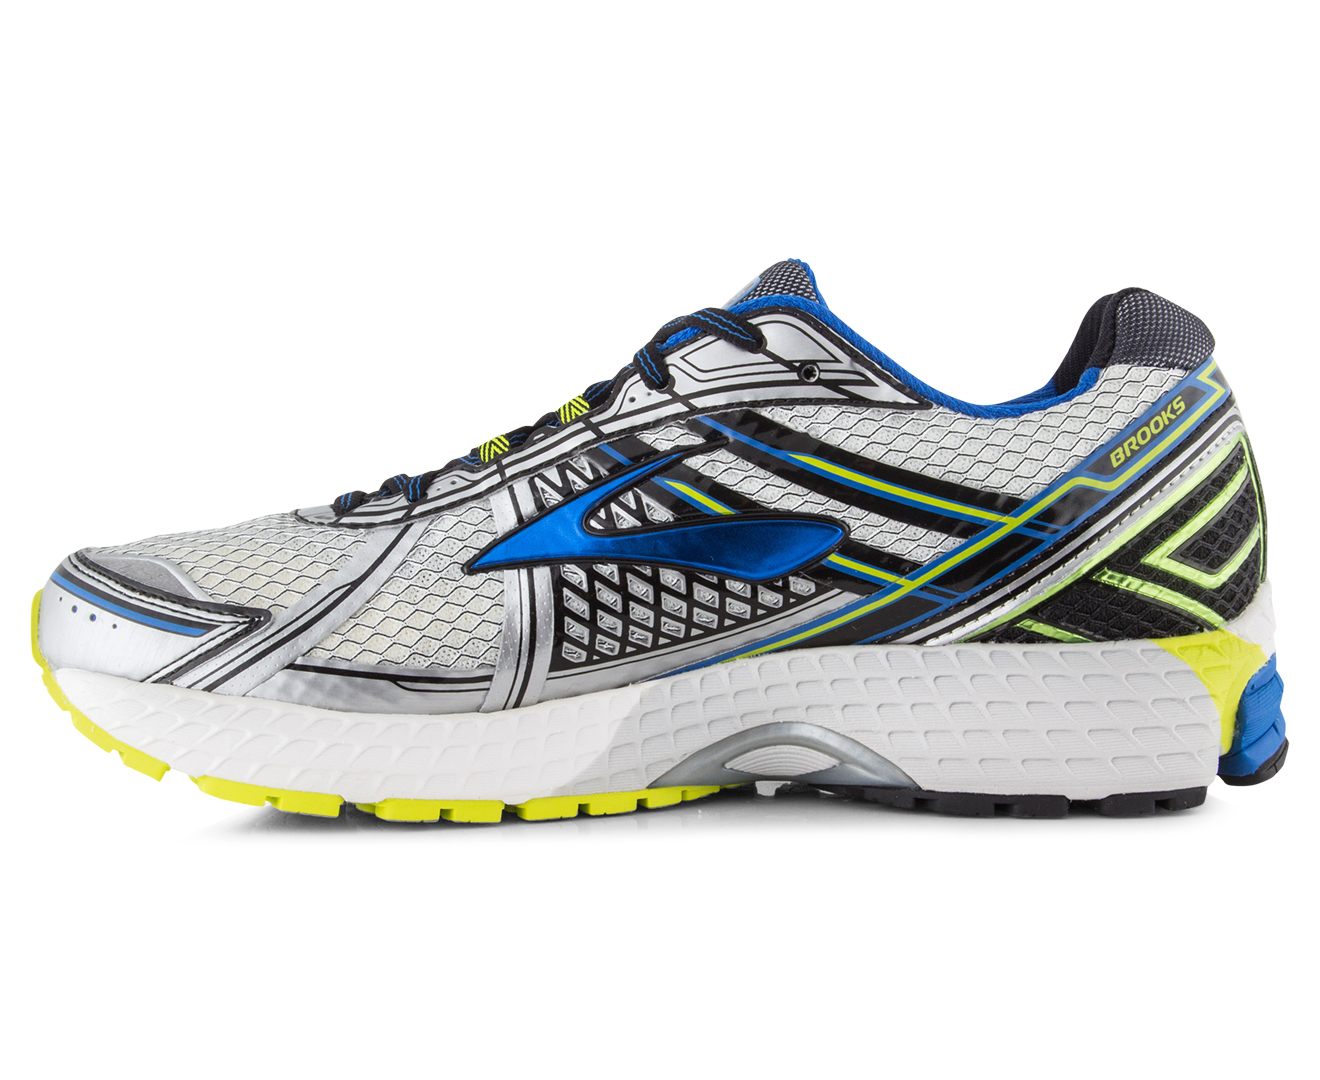 Brooks Mens Shoes Catch Of The Day